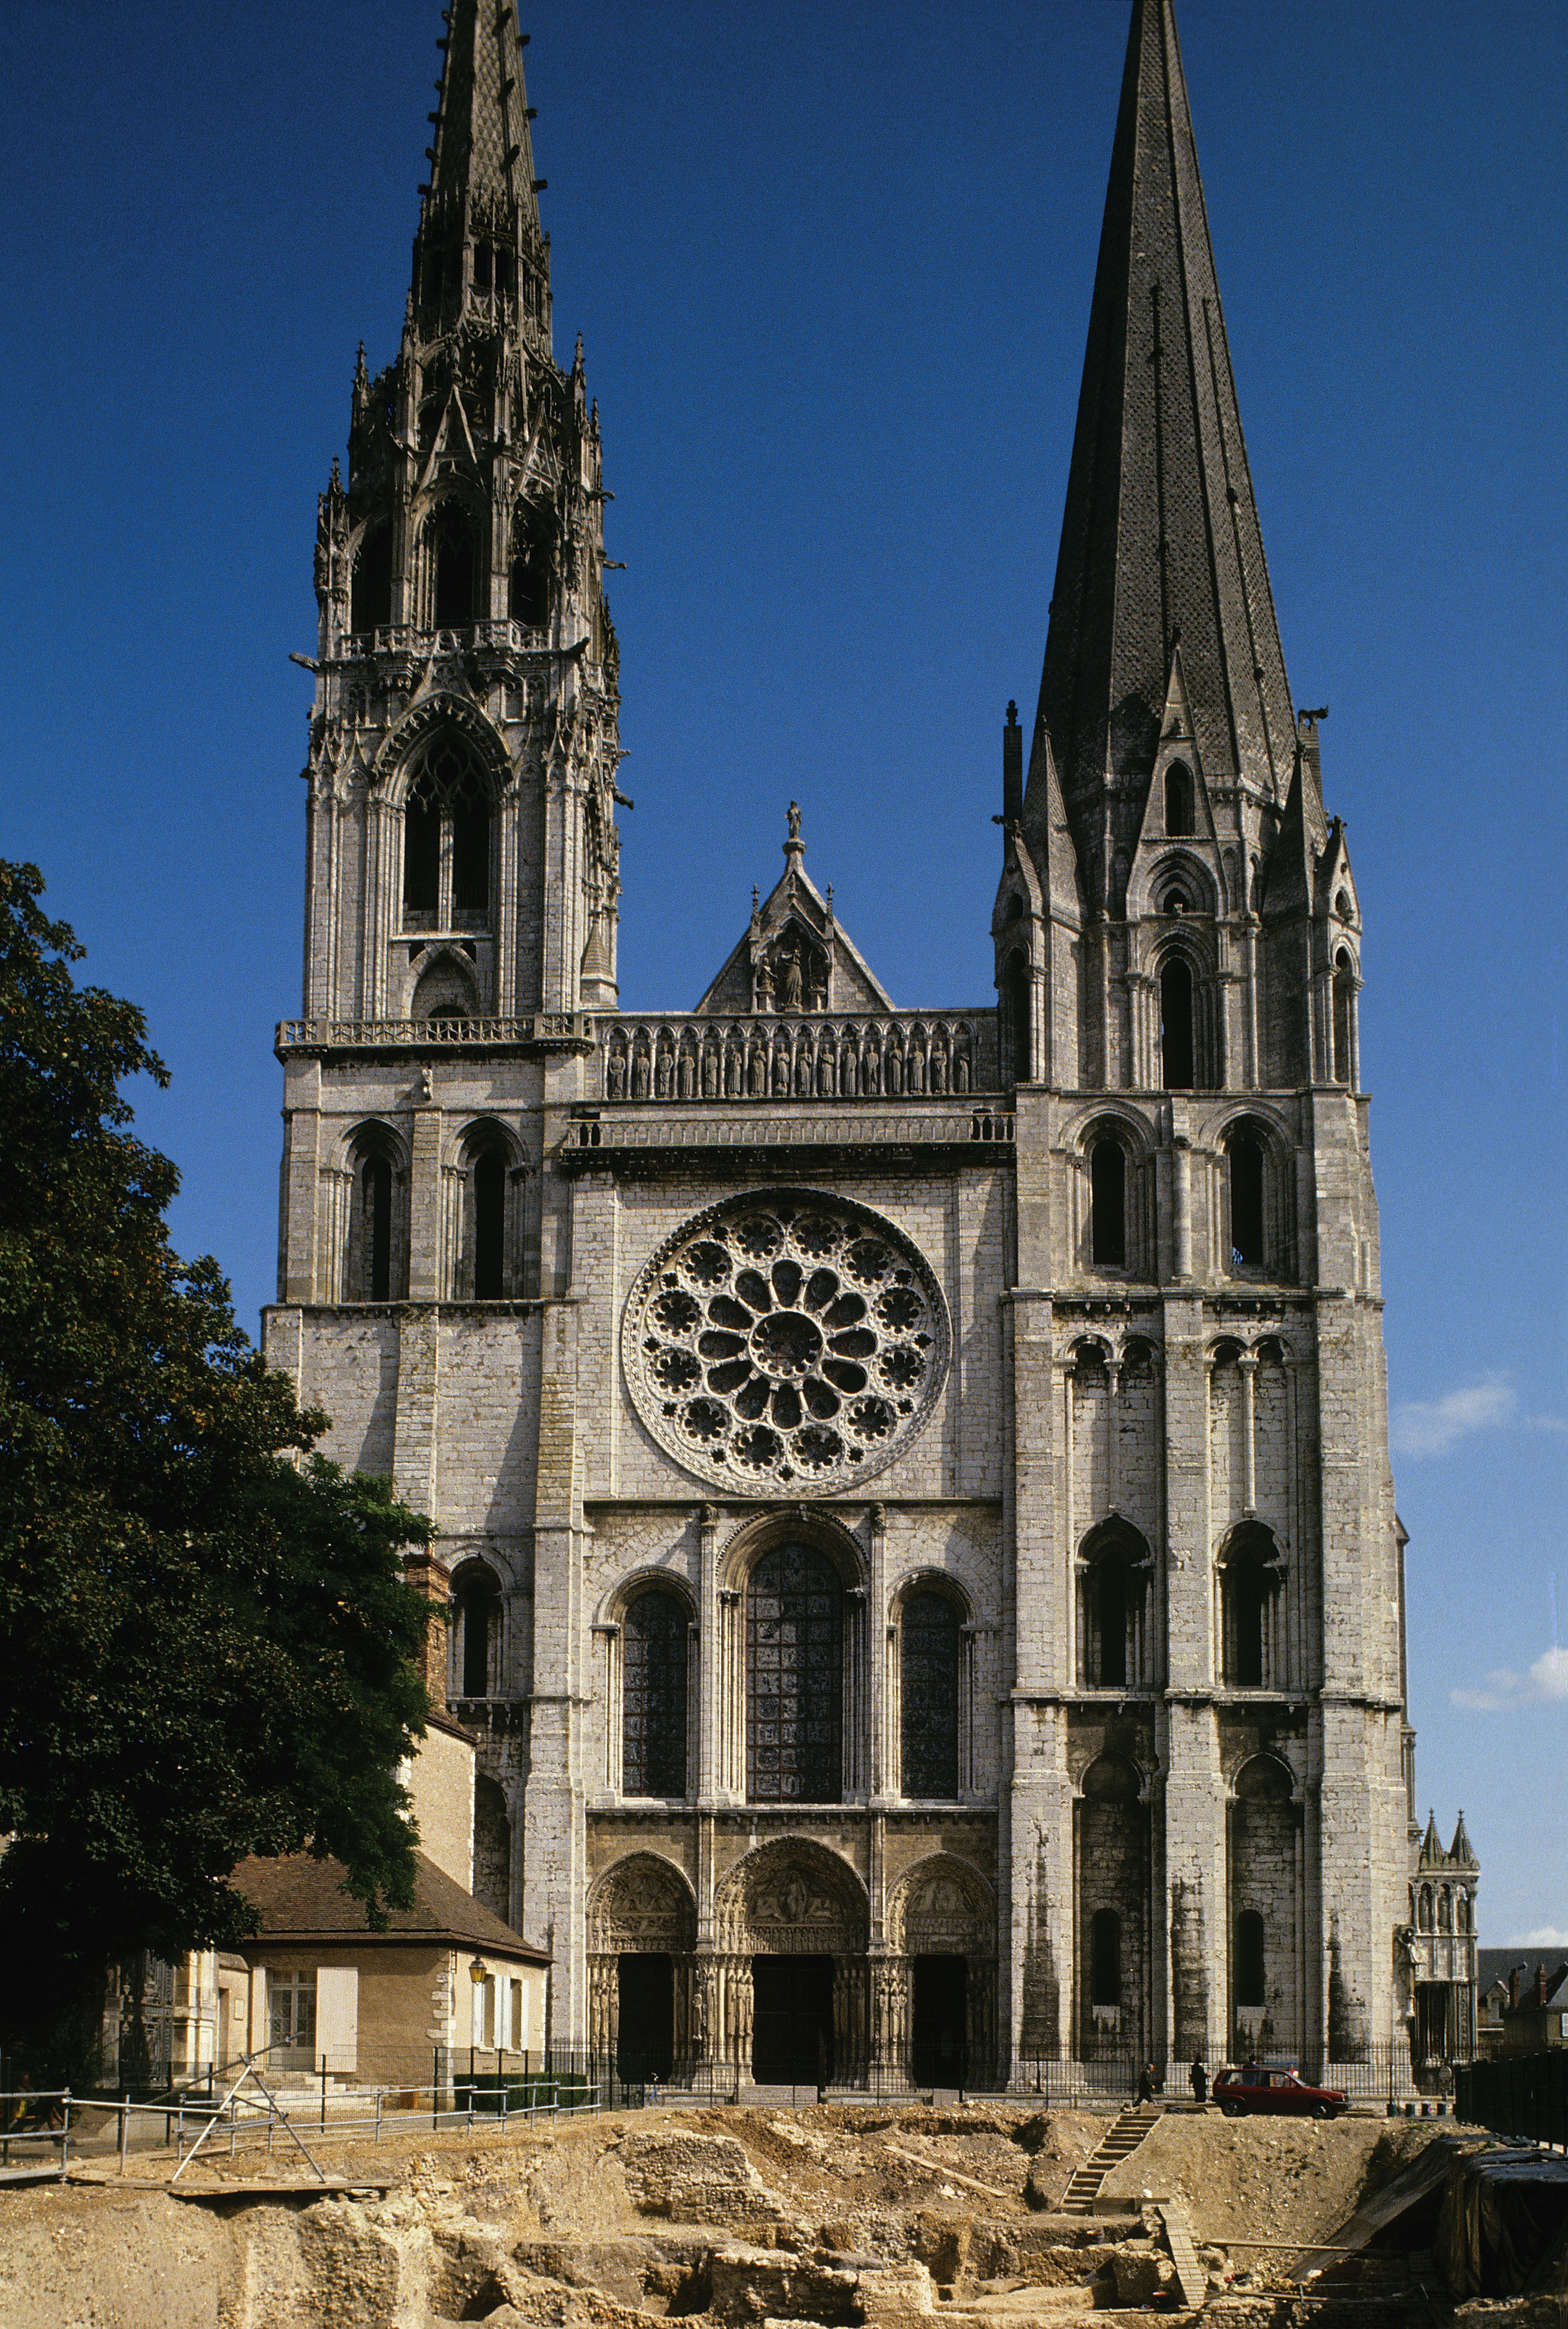 west facade chartres cathedral 1134 1220 located in. Black Bedroom Furniture Sets. Home Design Ideas